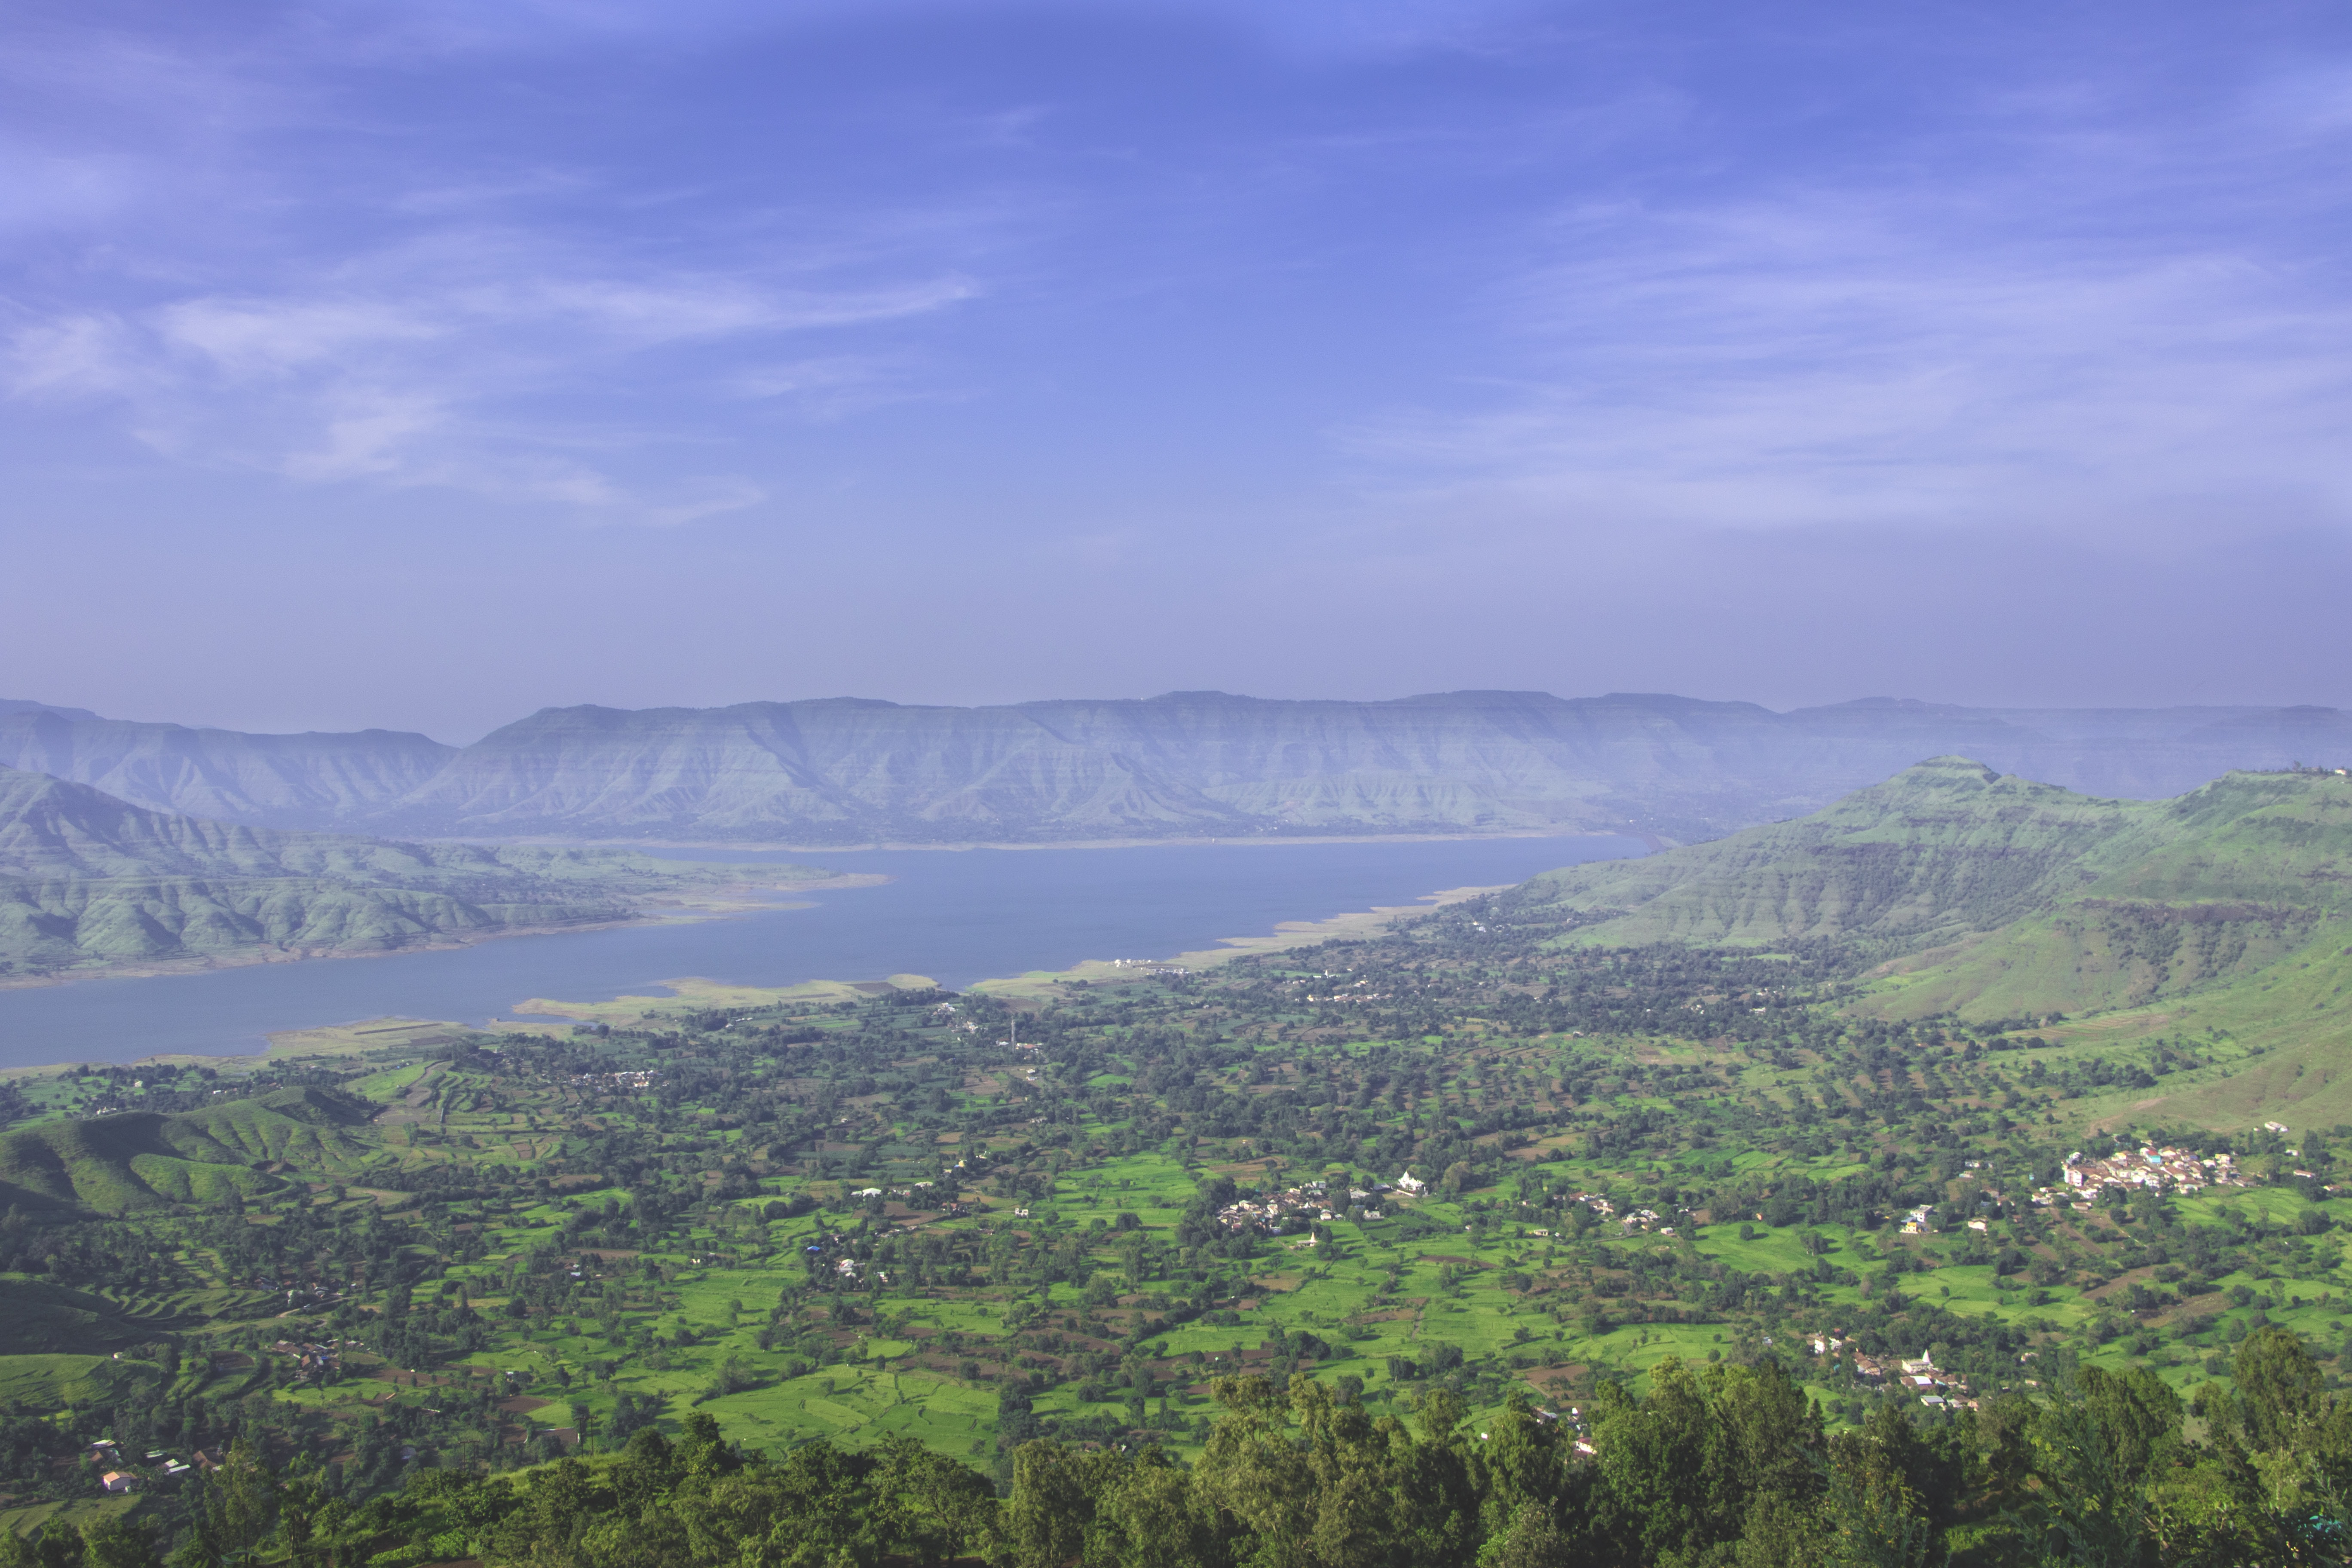 A vast rural landscape near a large river in Panchgani